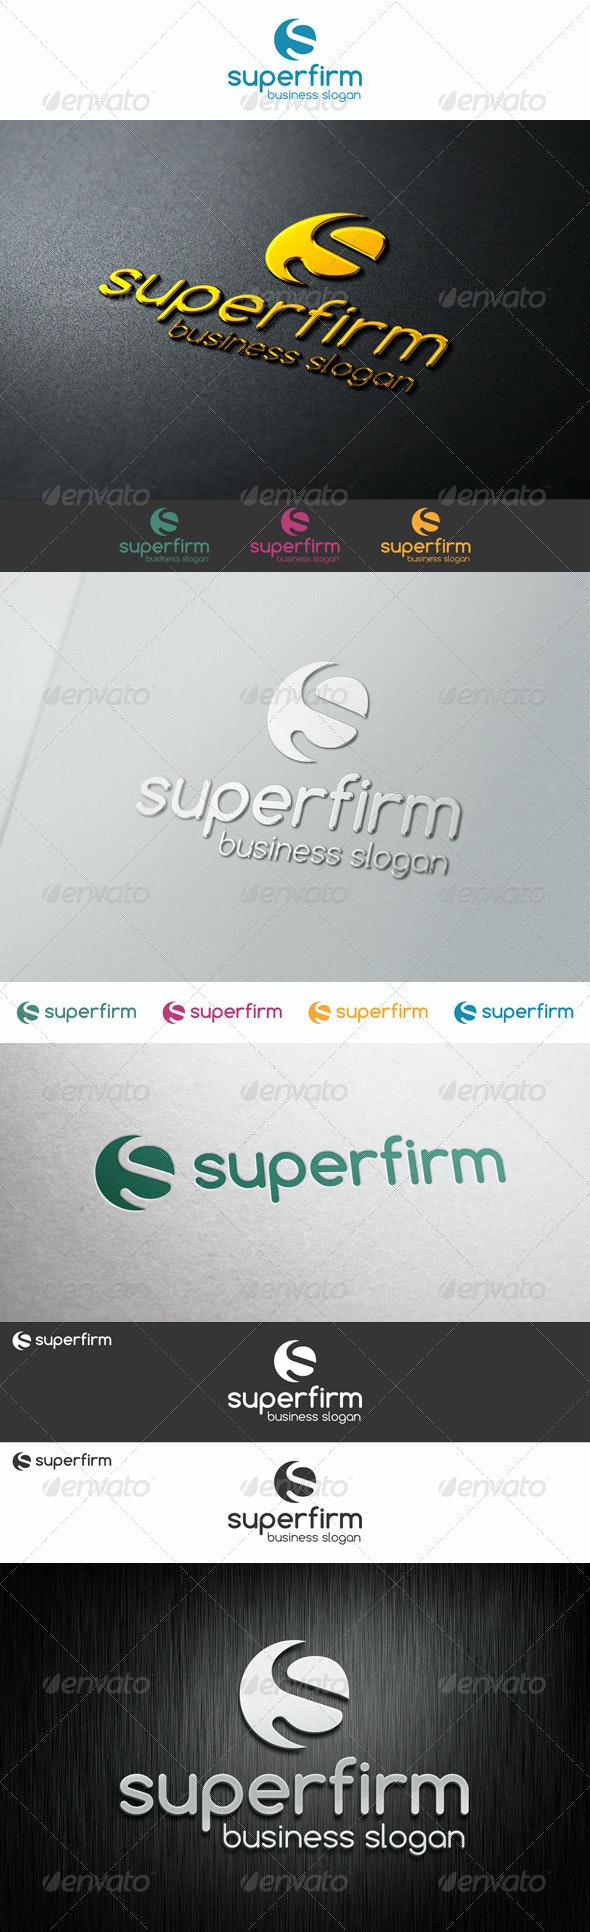 S Logo Shape - Super Firm - Letters Logo Templates